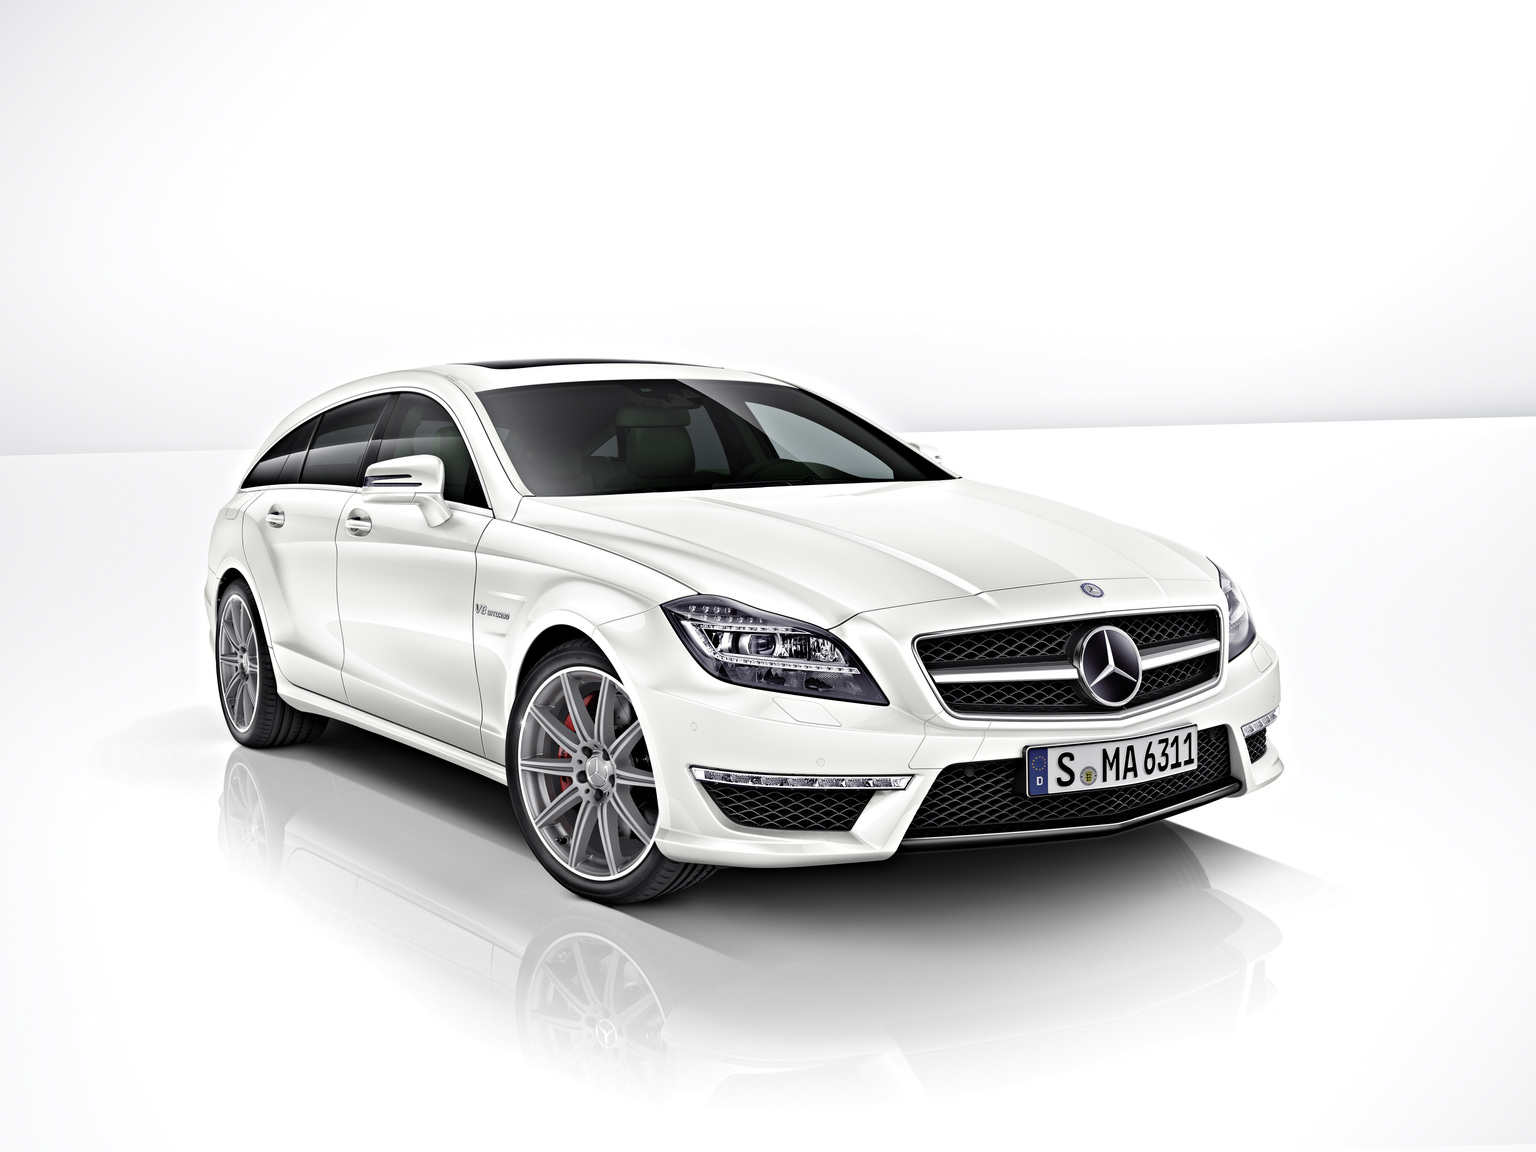 2013 Mercedes-Benz CLS 63 AMG 4MATIC Shooting Brake